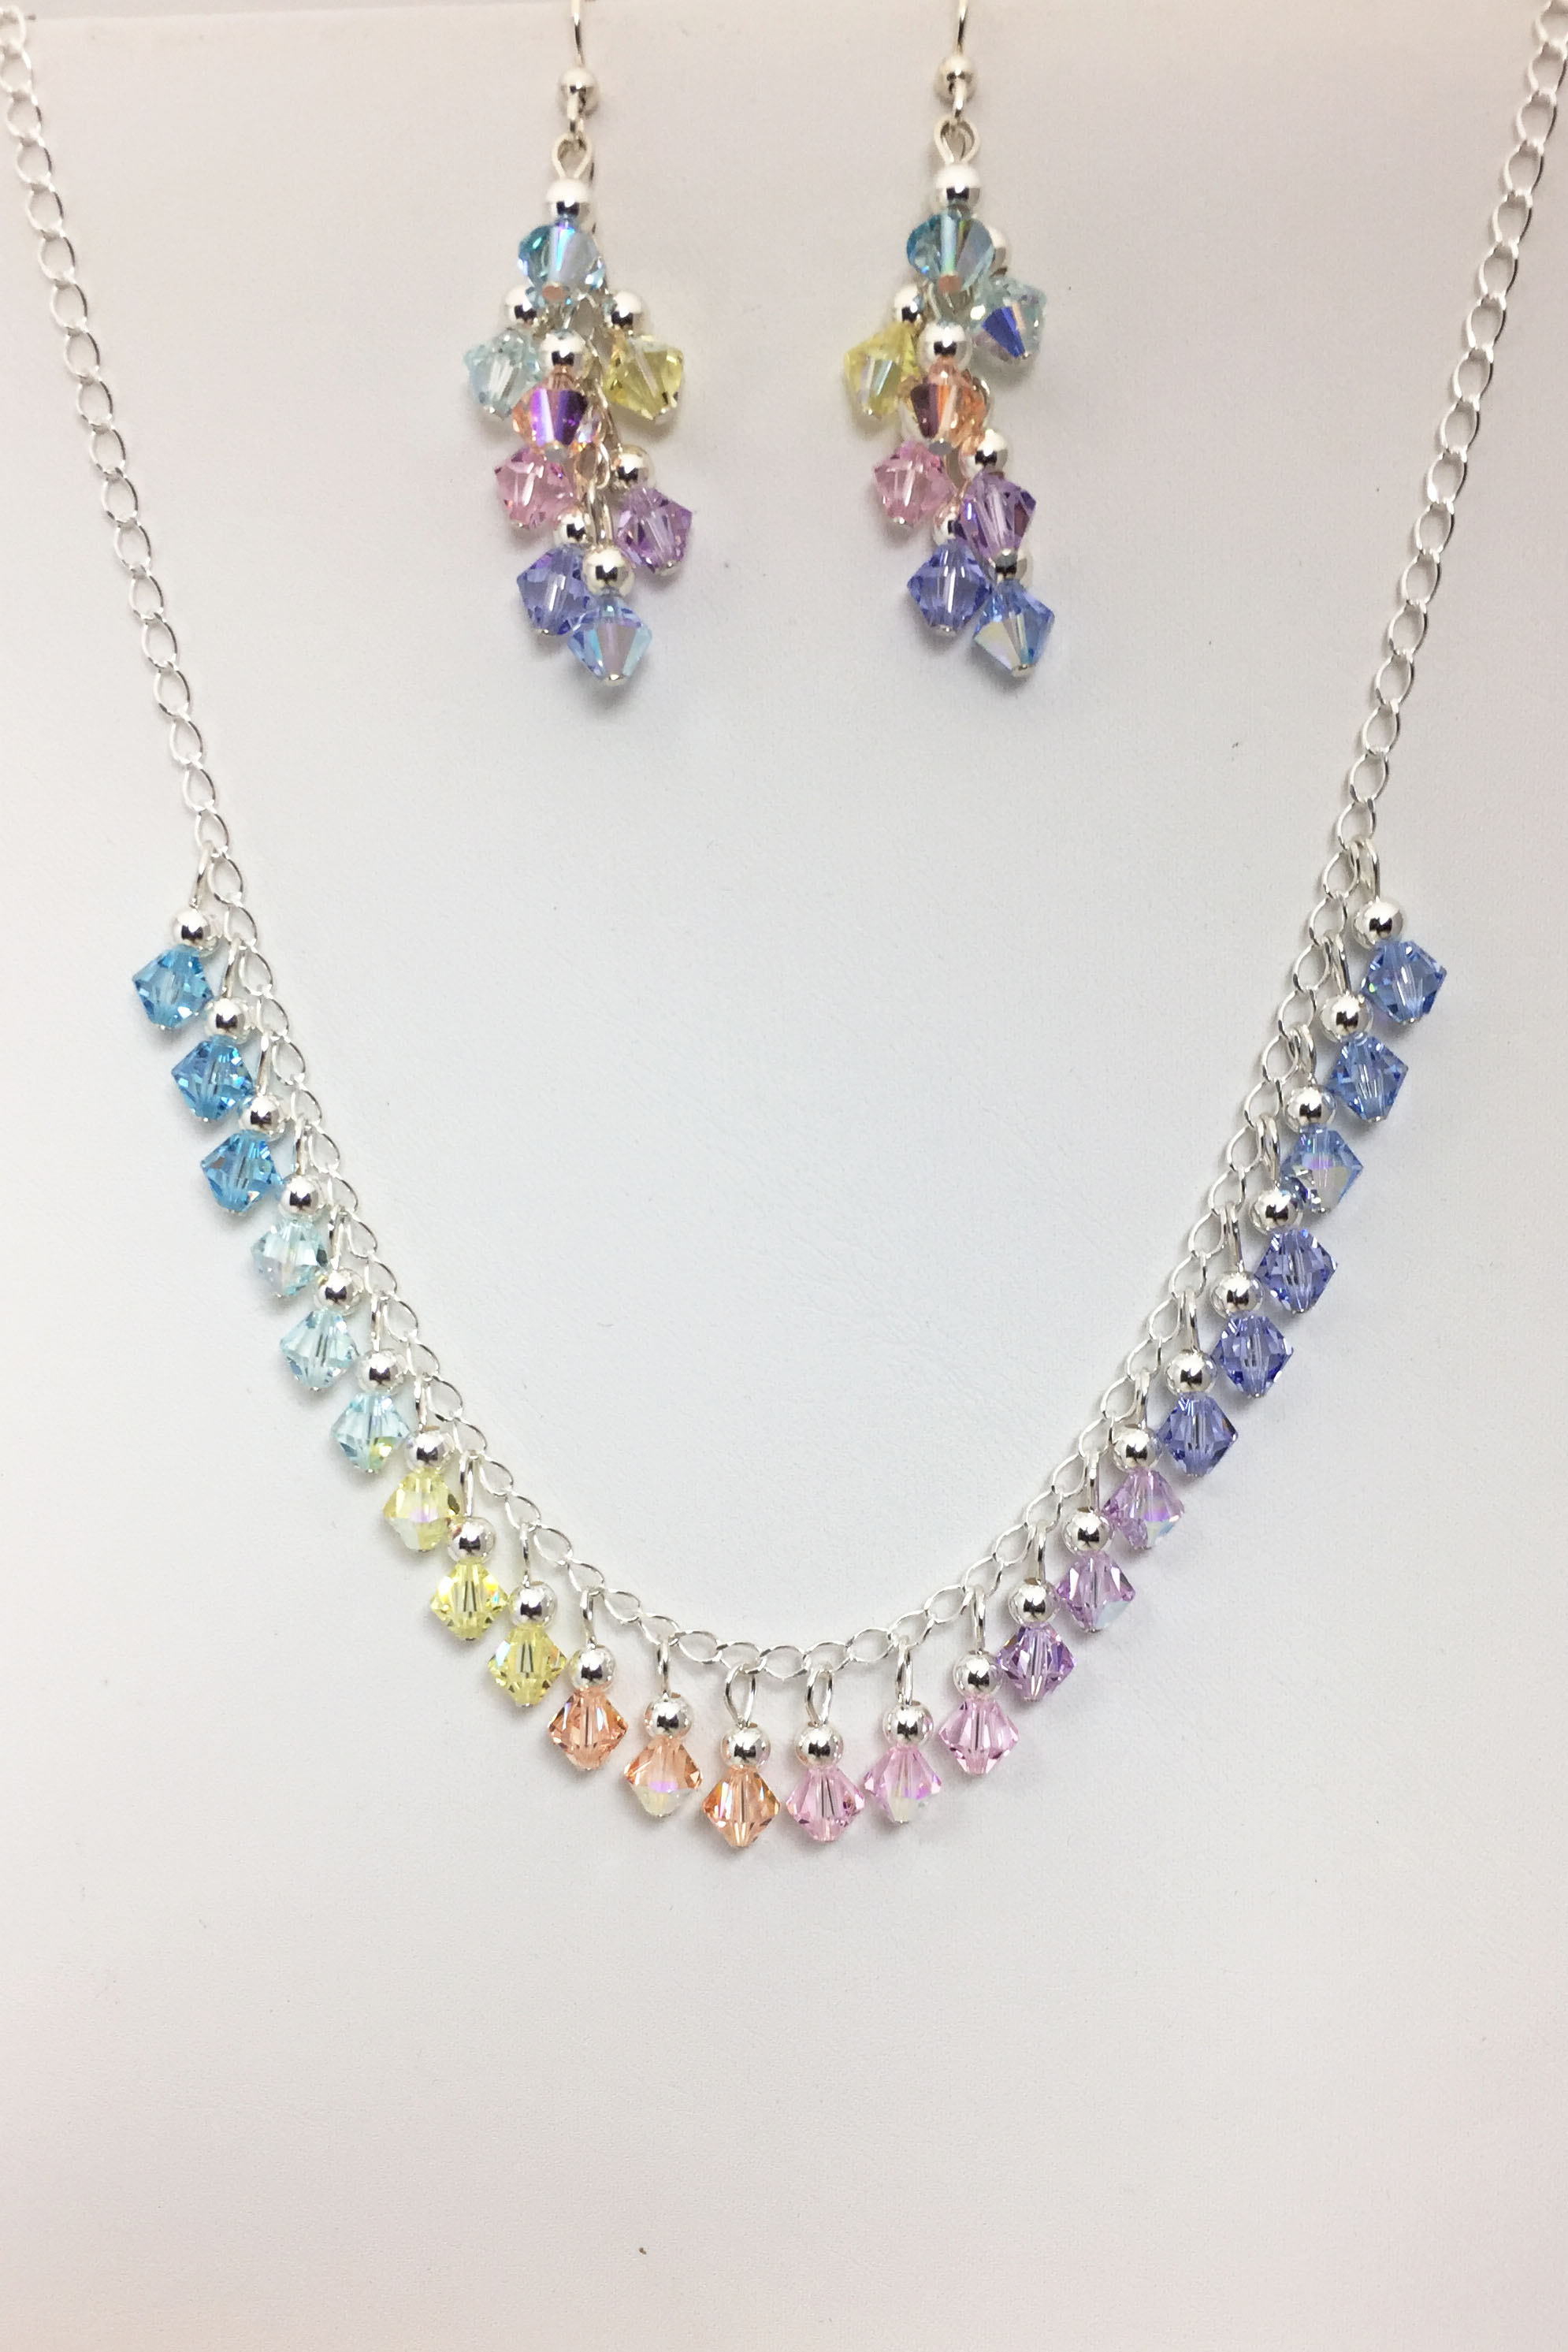 Beaddazzling- Pastel Swarovski Crystal Necklace and Earrings